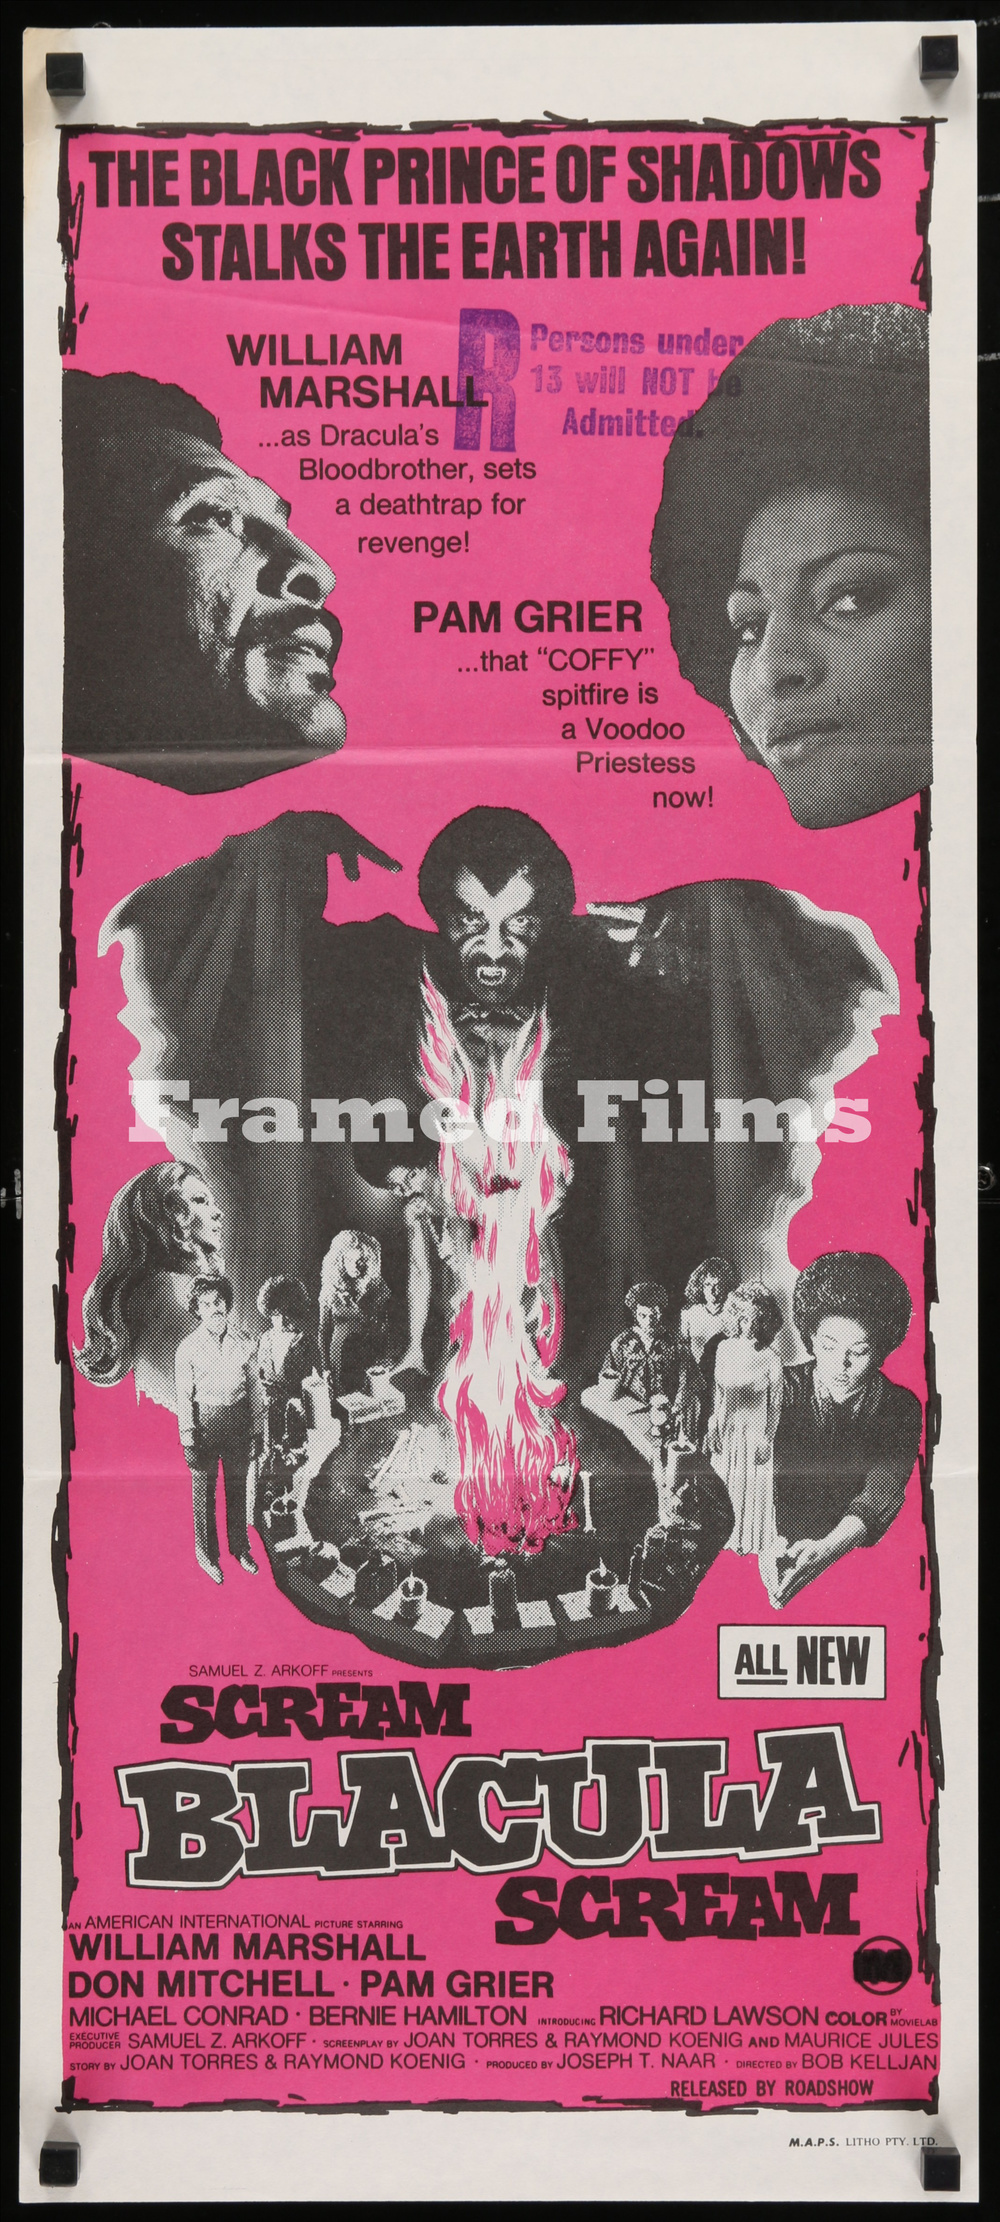 aust_db_scream_blacula_scream_BM00876_C.jpg